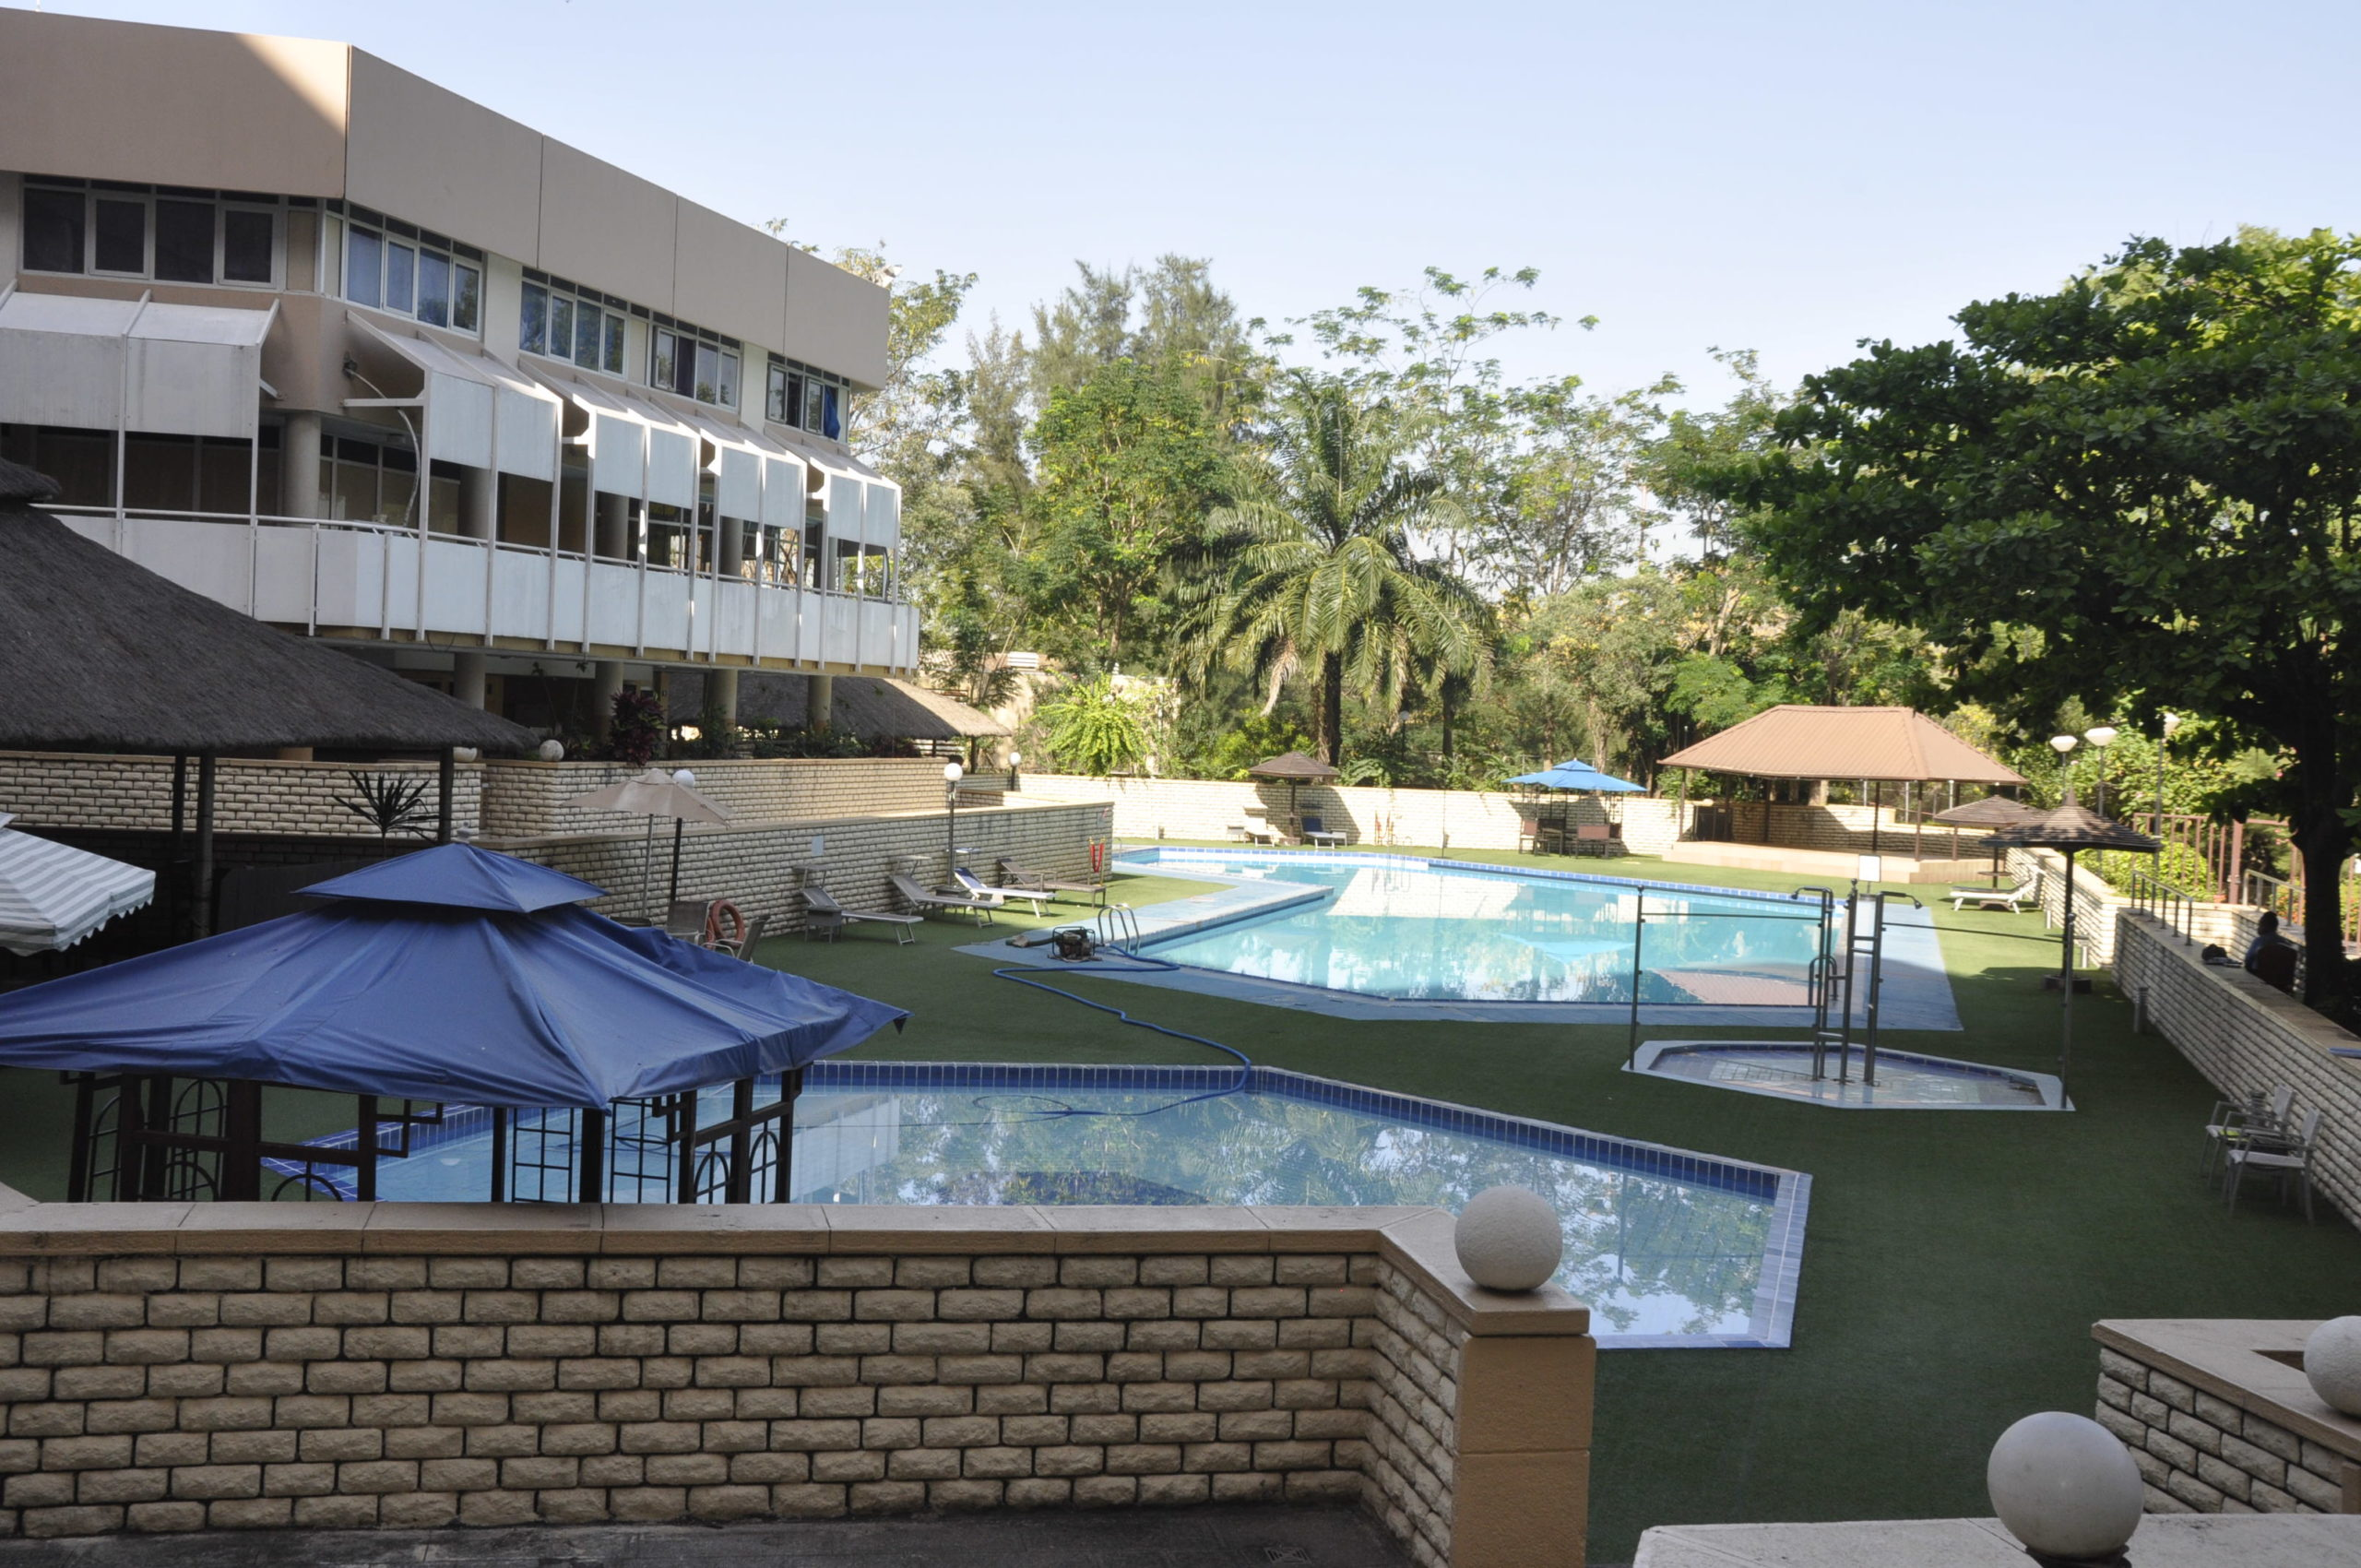 HOTEL FOR SALE IN ABUJA-580 Suites 4-Star Rated Highrise Hotel For Sale In Abuja.